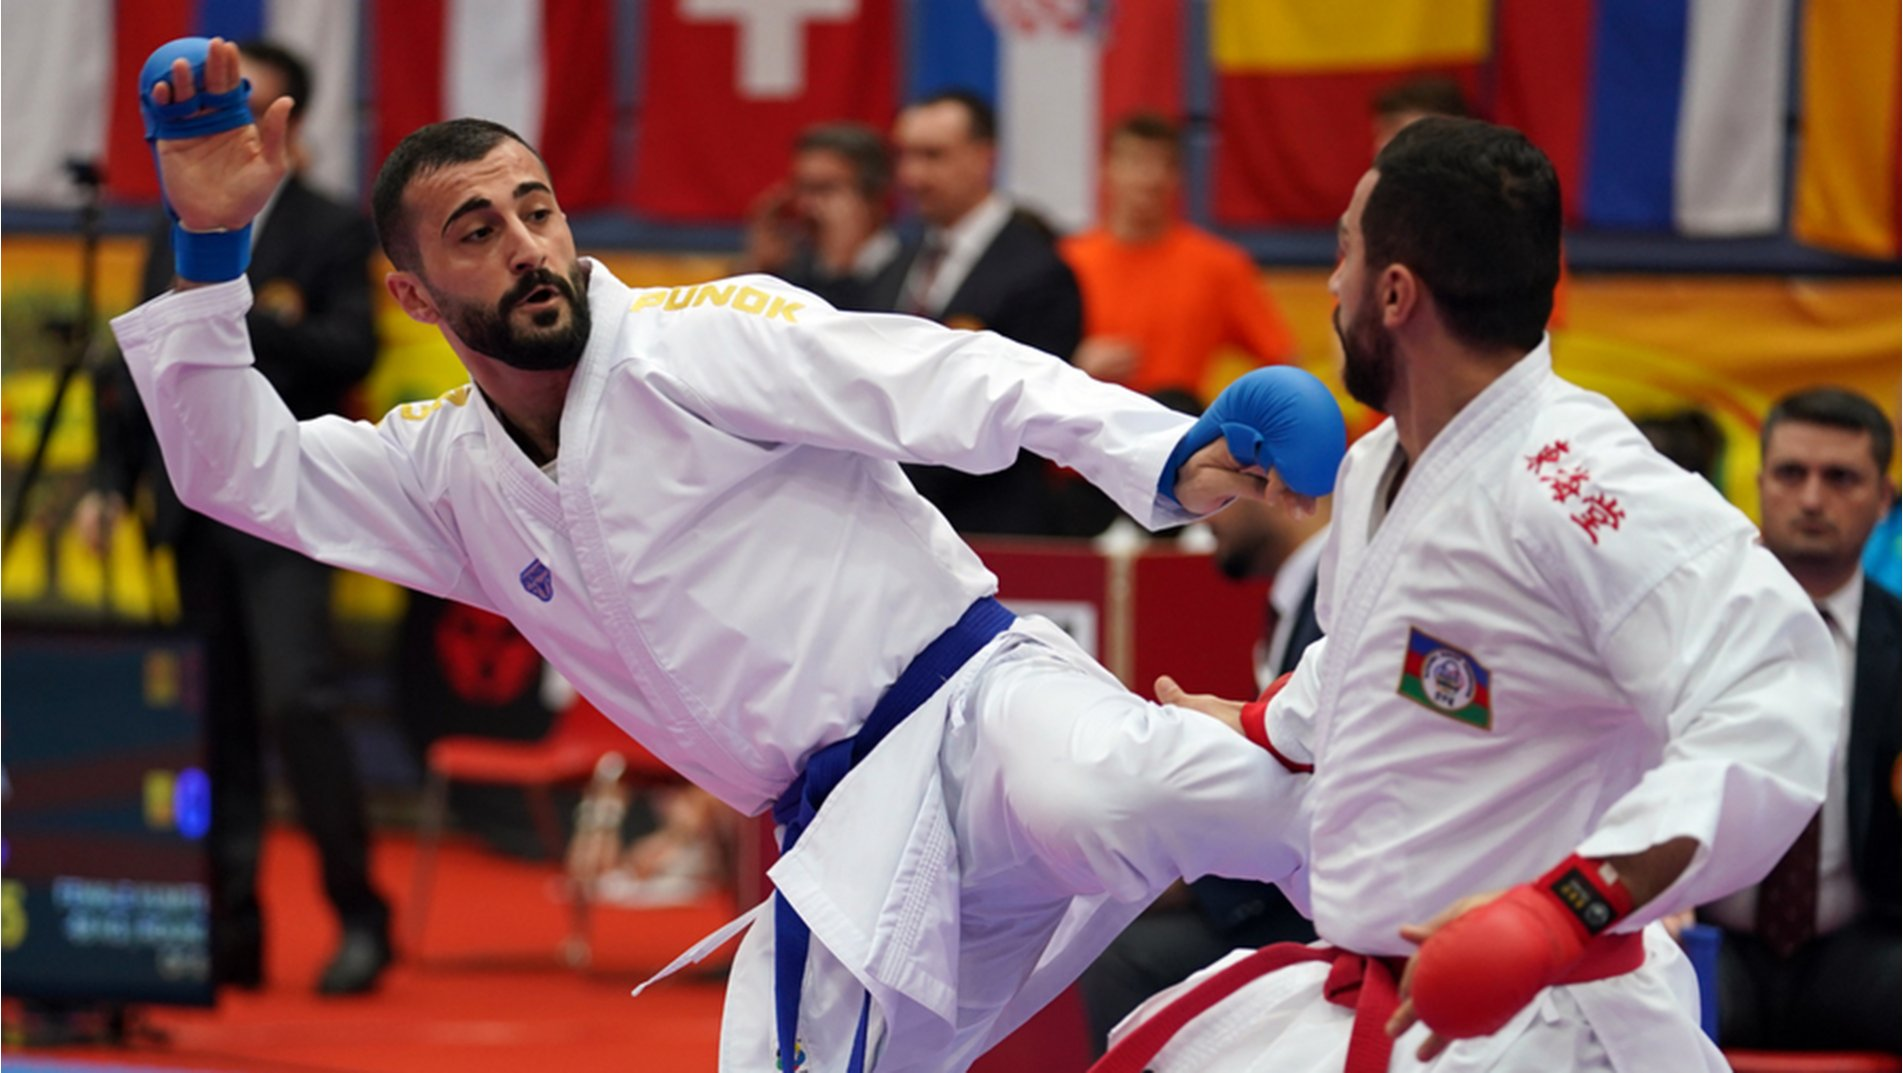 Surprises continue in Karate 1 Premier League Salzburg